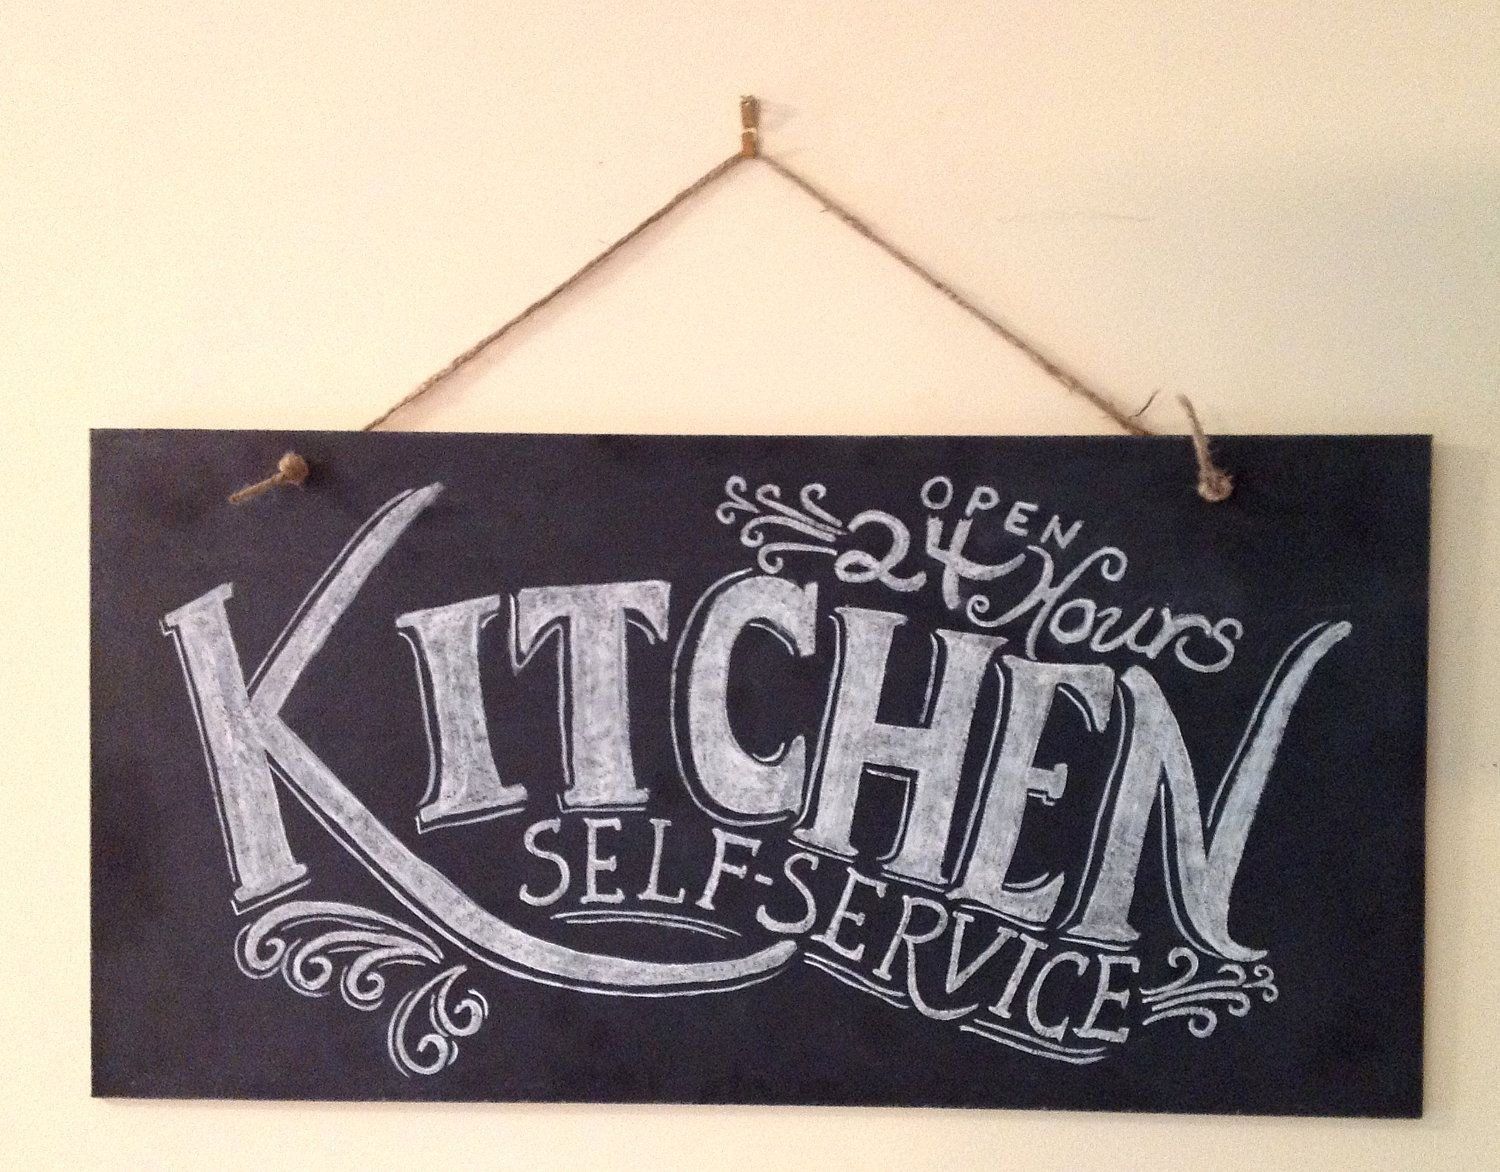 Hand Painted Kitchen Typography Chalkboard Kitchen Wall Art 20 X 10 Ready To Hang With Twine Kitchen Chalkboard Kitchen Chalkboard Sign Kitchen Wall Art